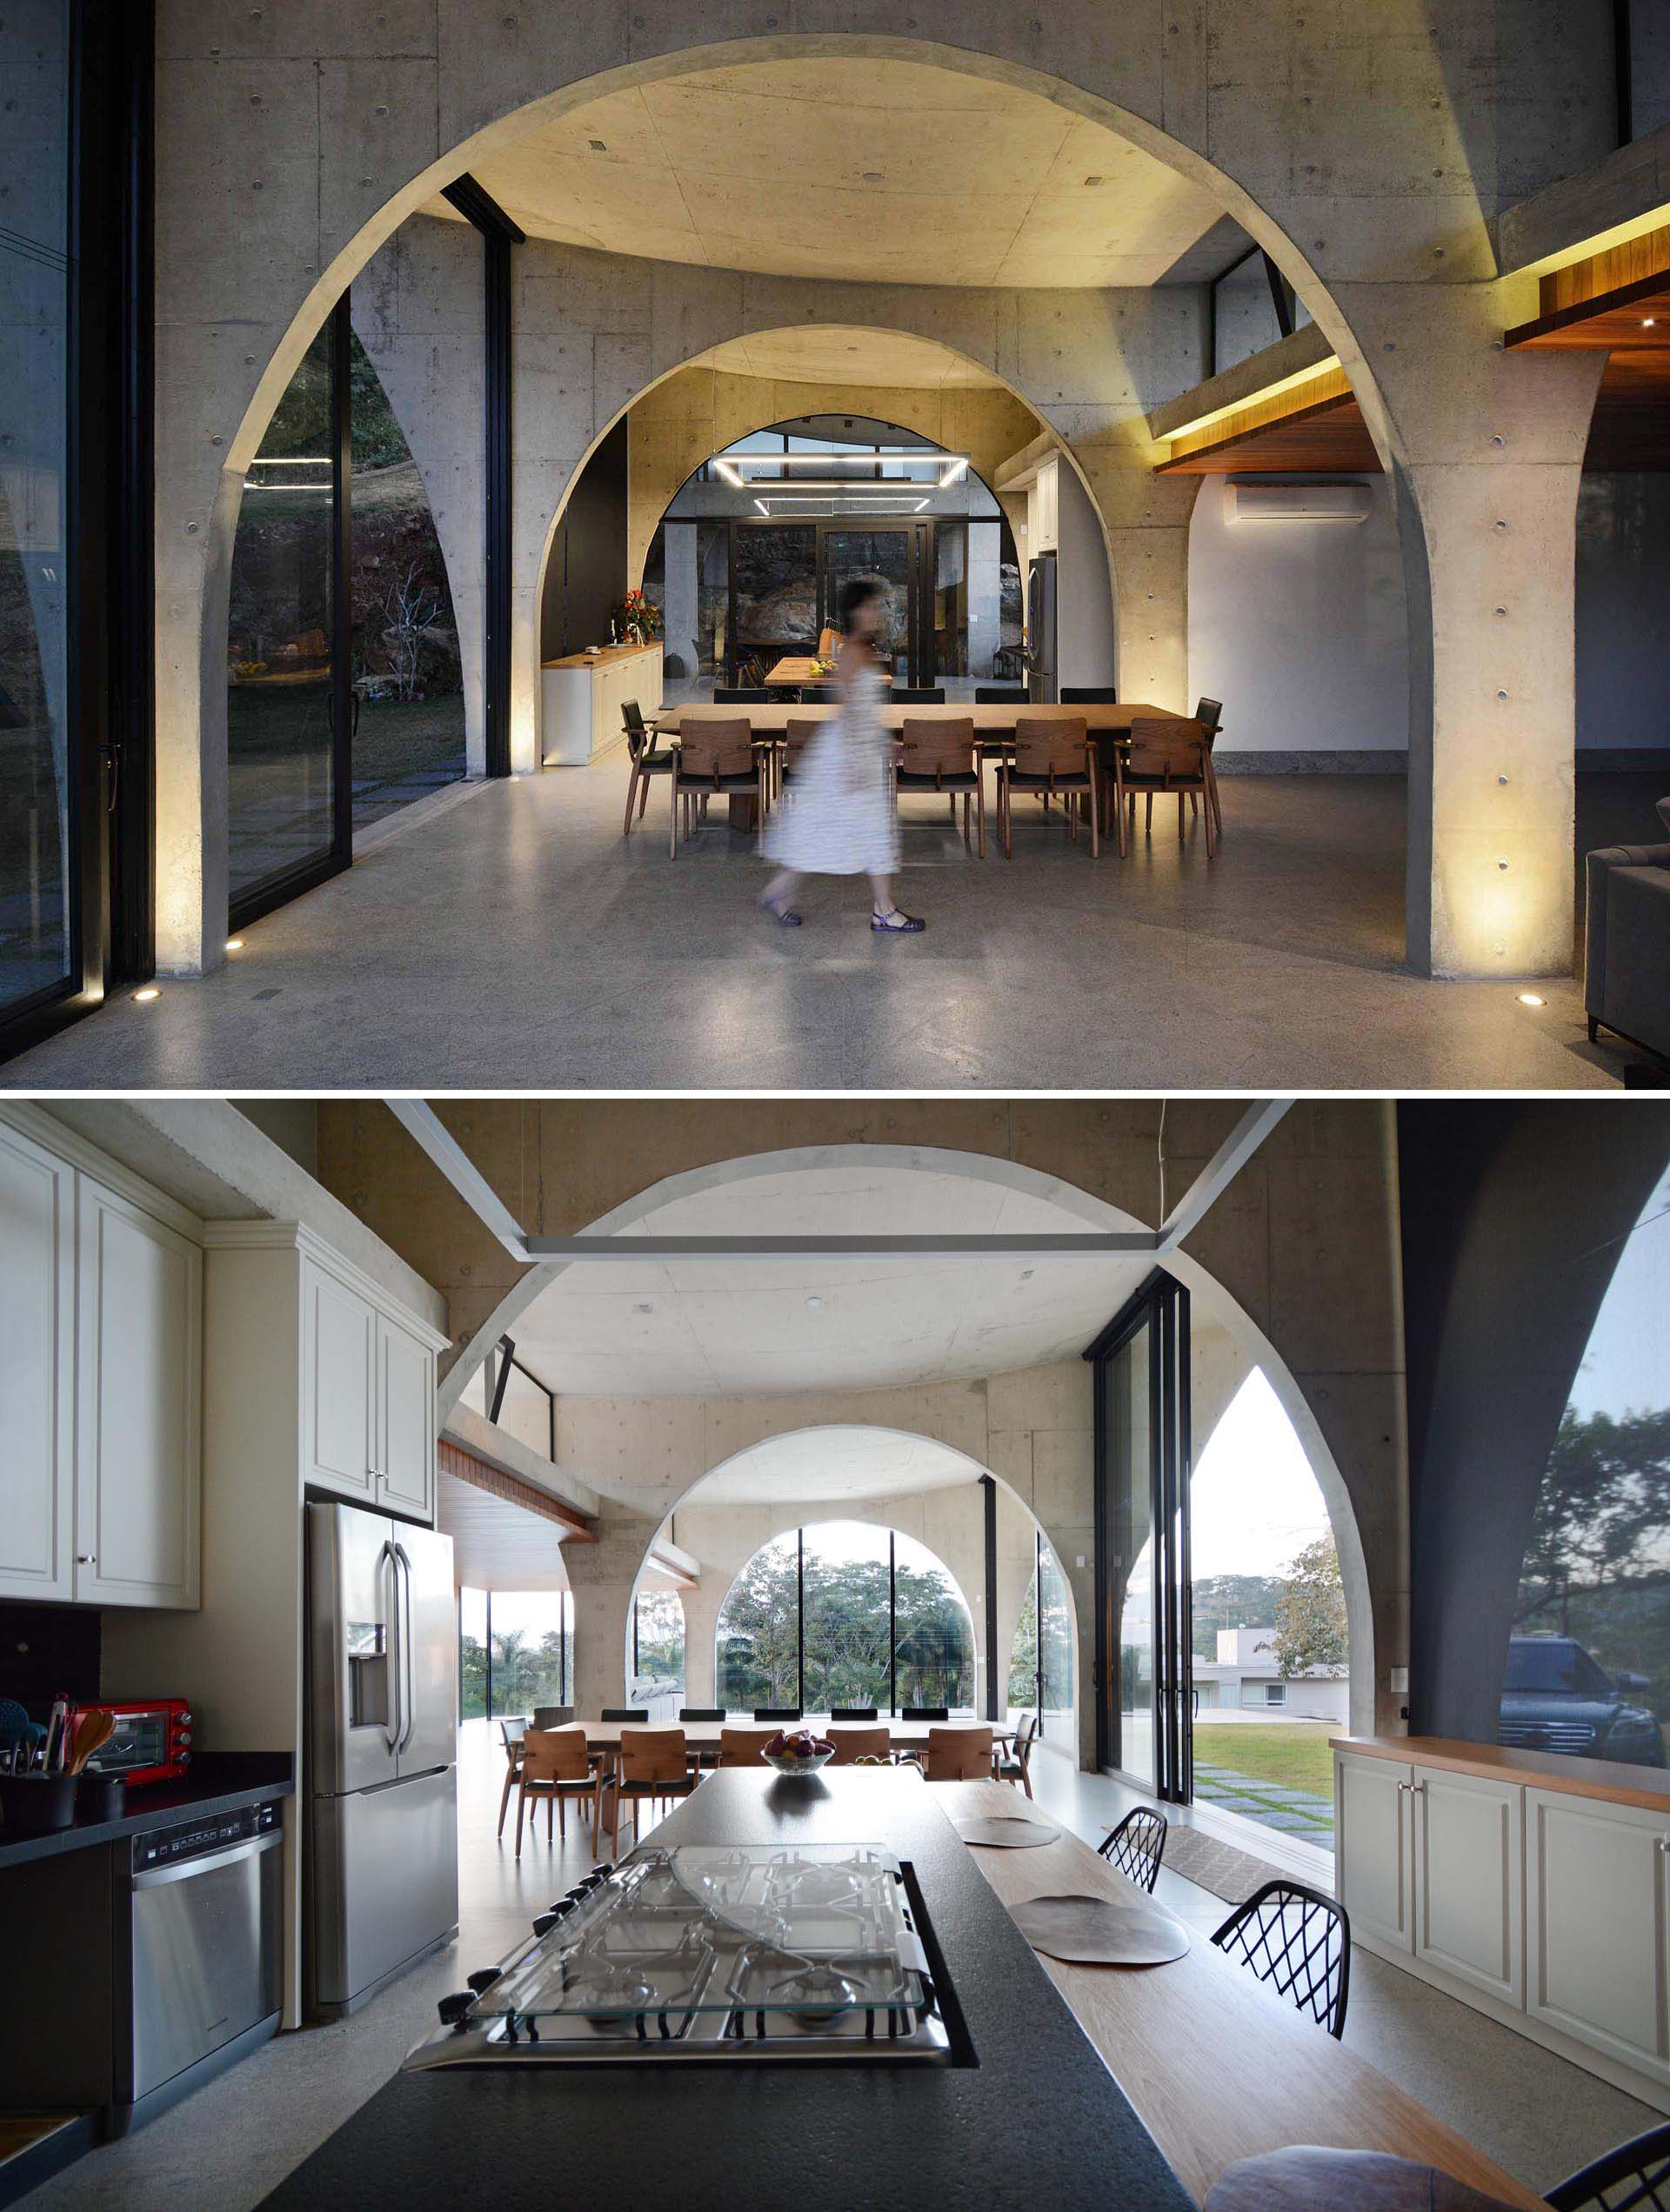 Concrete arches are key in creating an sense of space and height throughout this modern home.